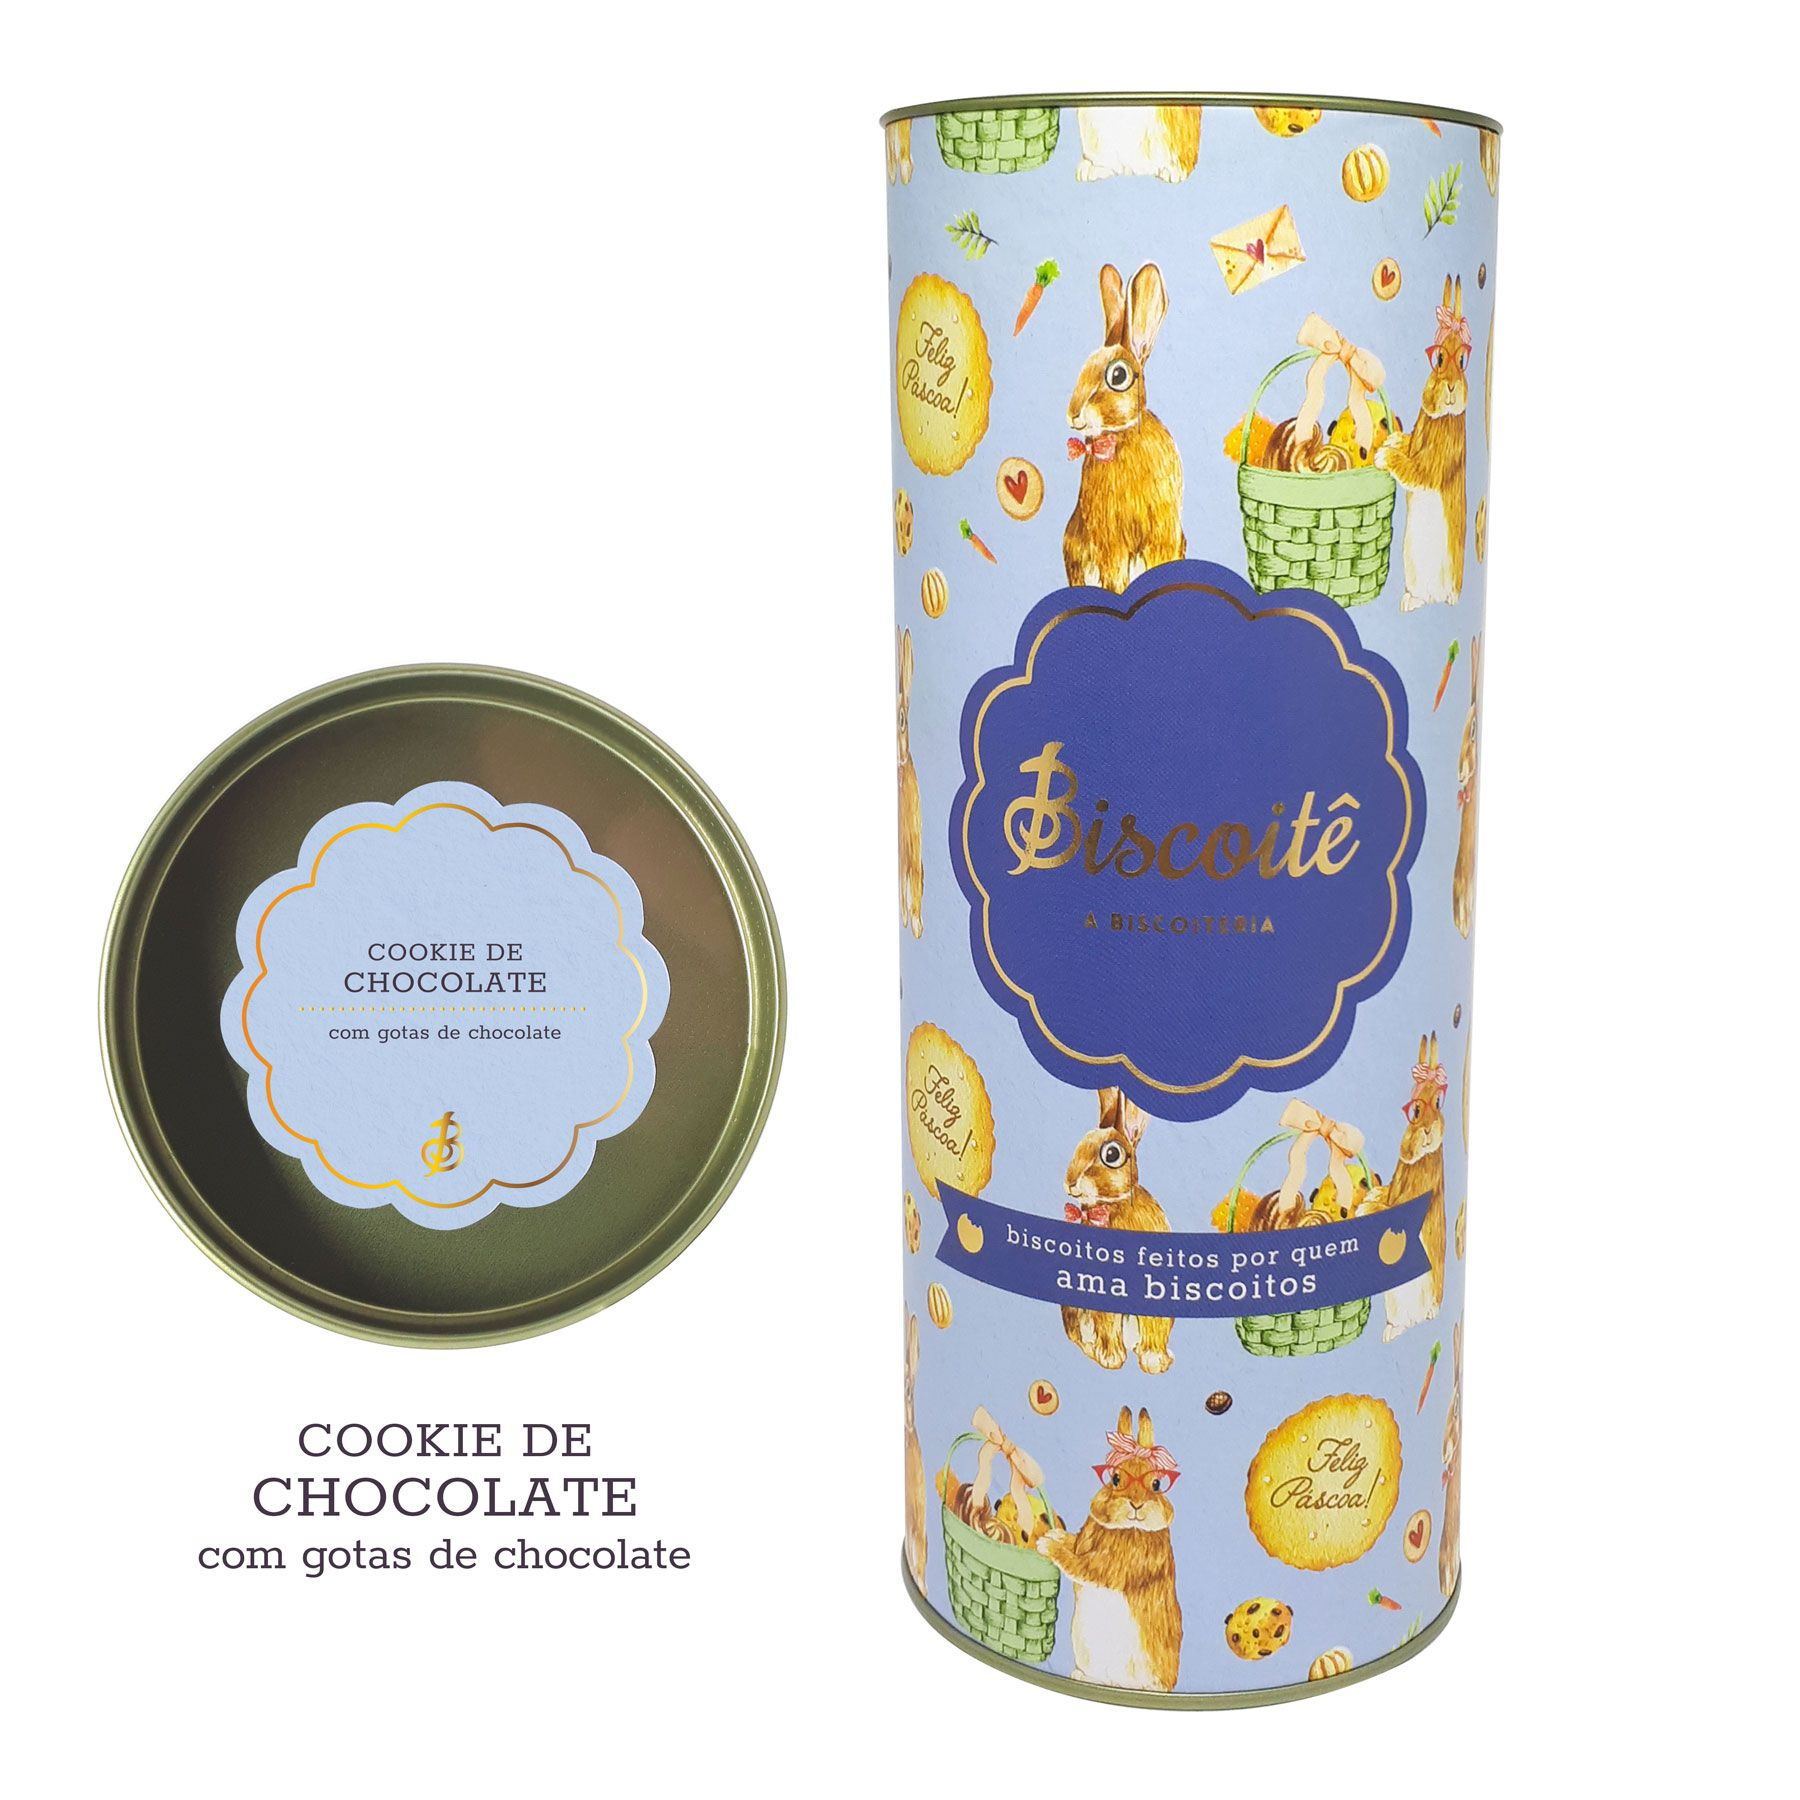 Cookie de Chocolate - LATA DE PÁSCOA  - 200g